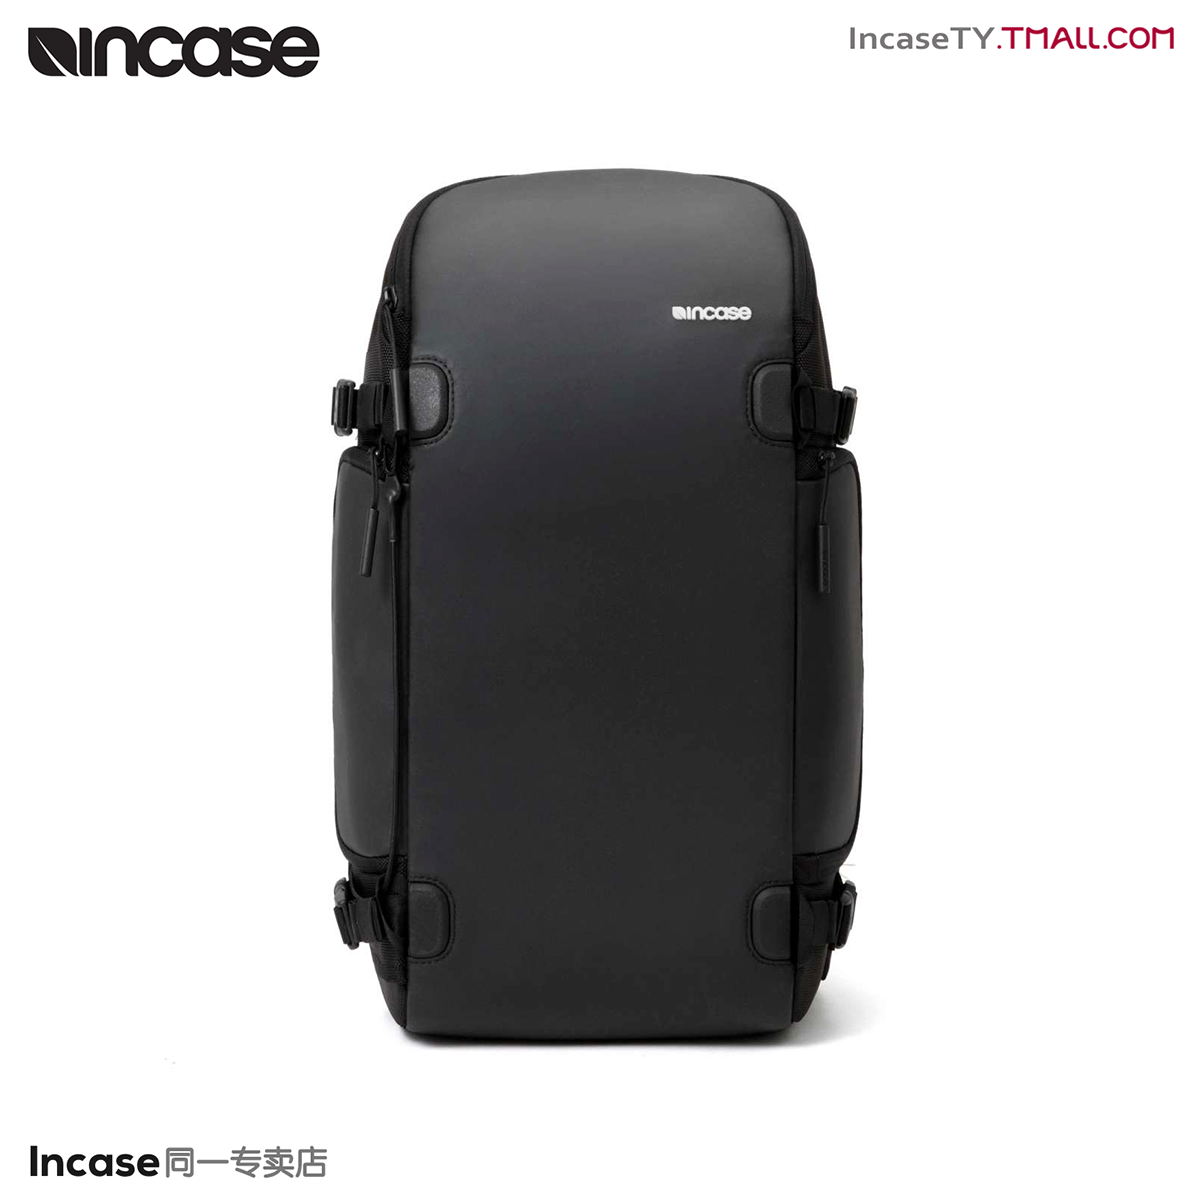 Incase sling pack accessory storage bag shoulder bag backpack professional gopro sports camera